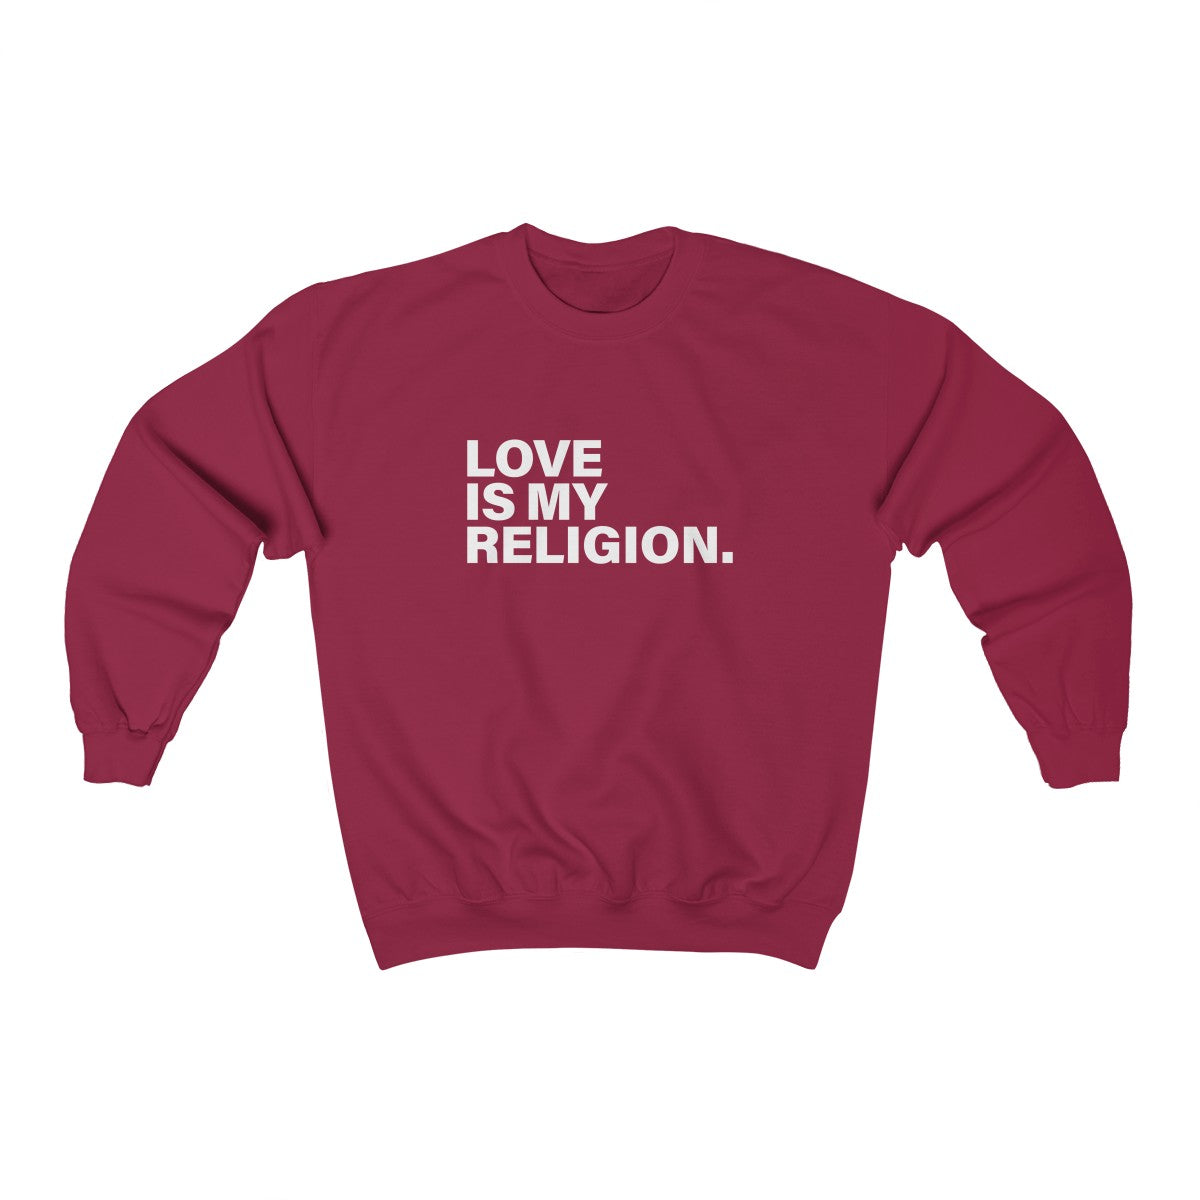 Love Is My Religion Unisex Heavy Blend™ Crewneck Sweatshirt - DARK COLORS